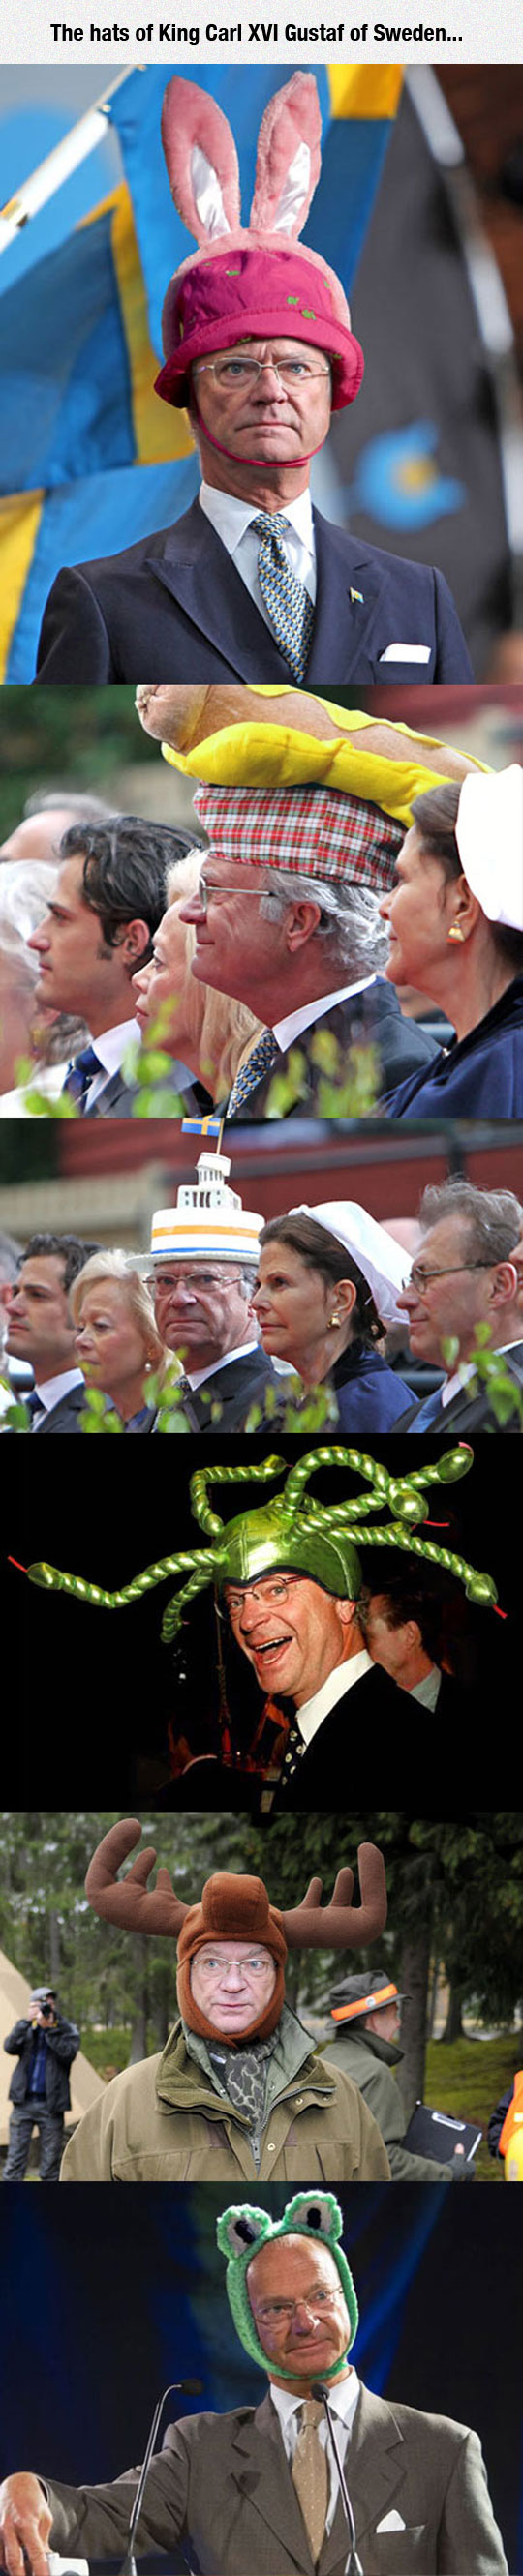 funny-king-Gustaf-Sweden-hat-rabbit